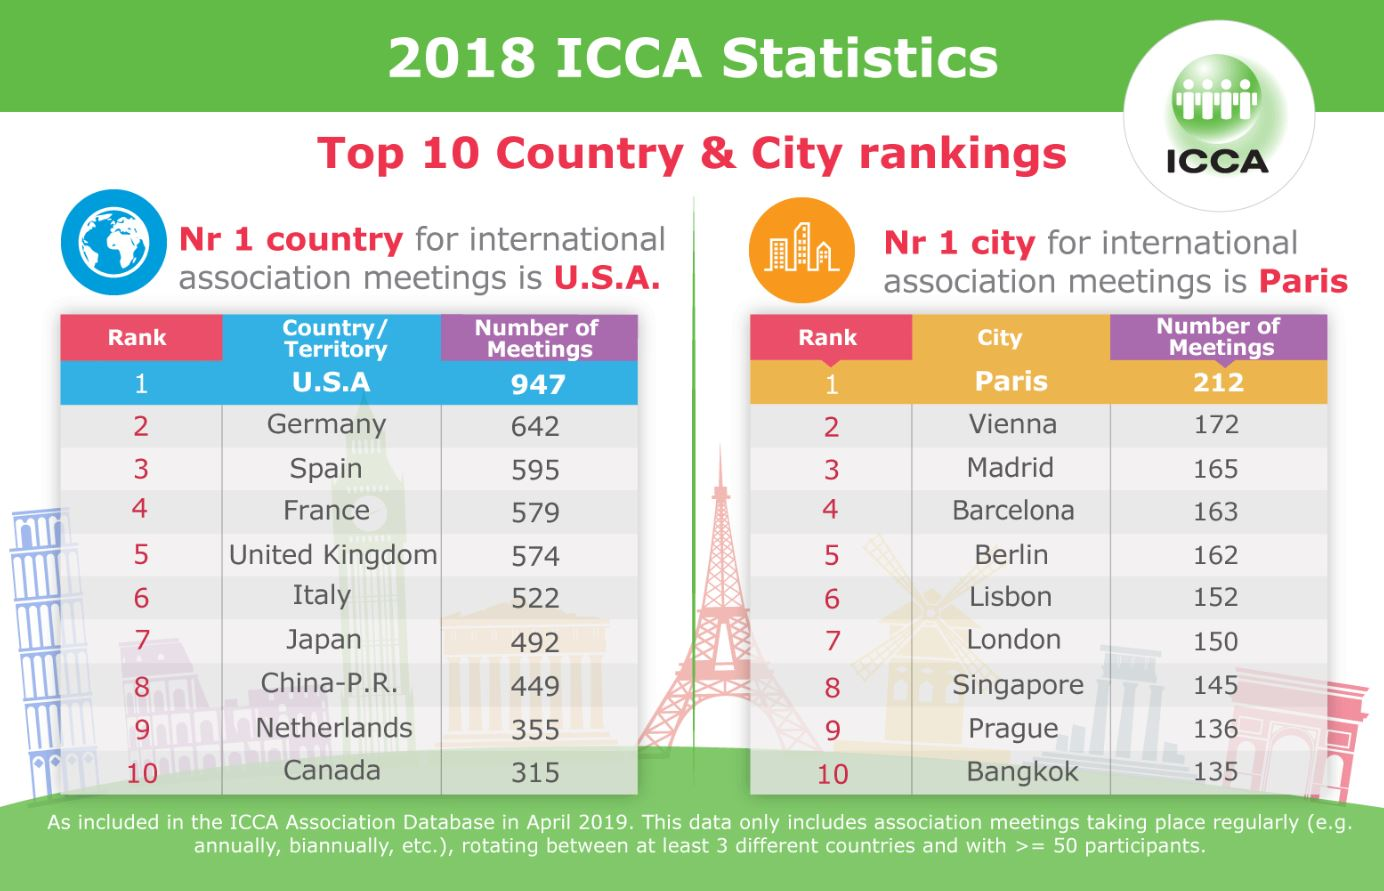 ICCA's 2018 country and city rankings